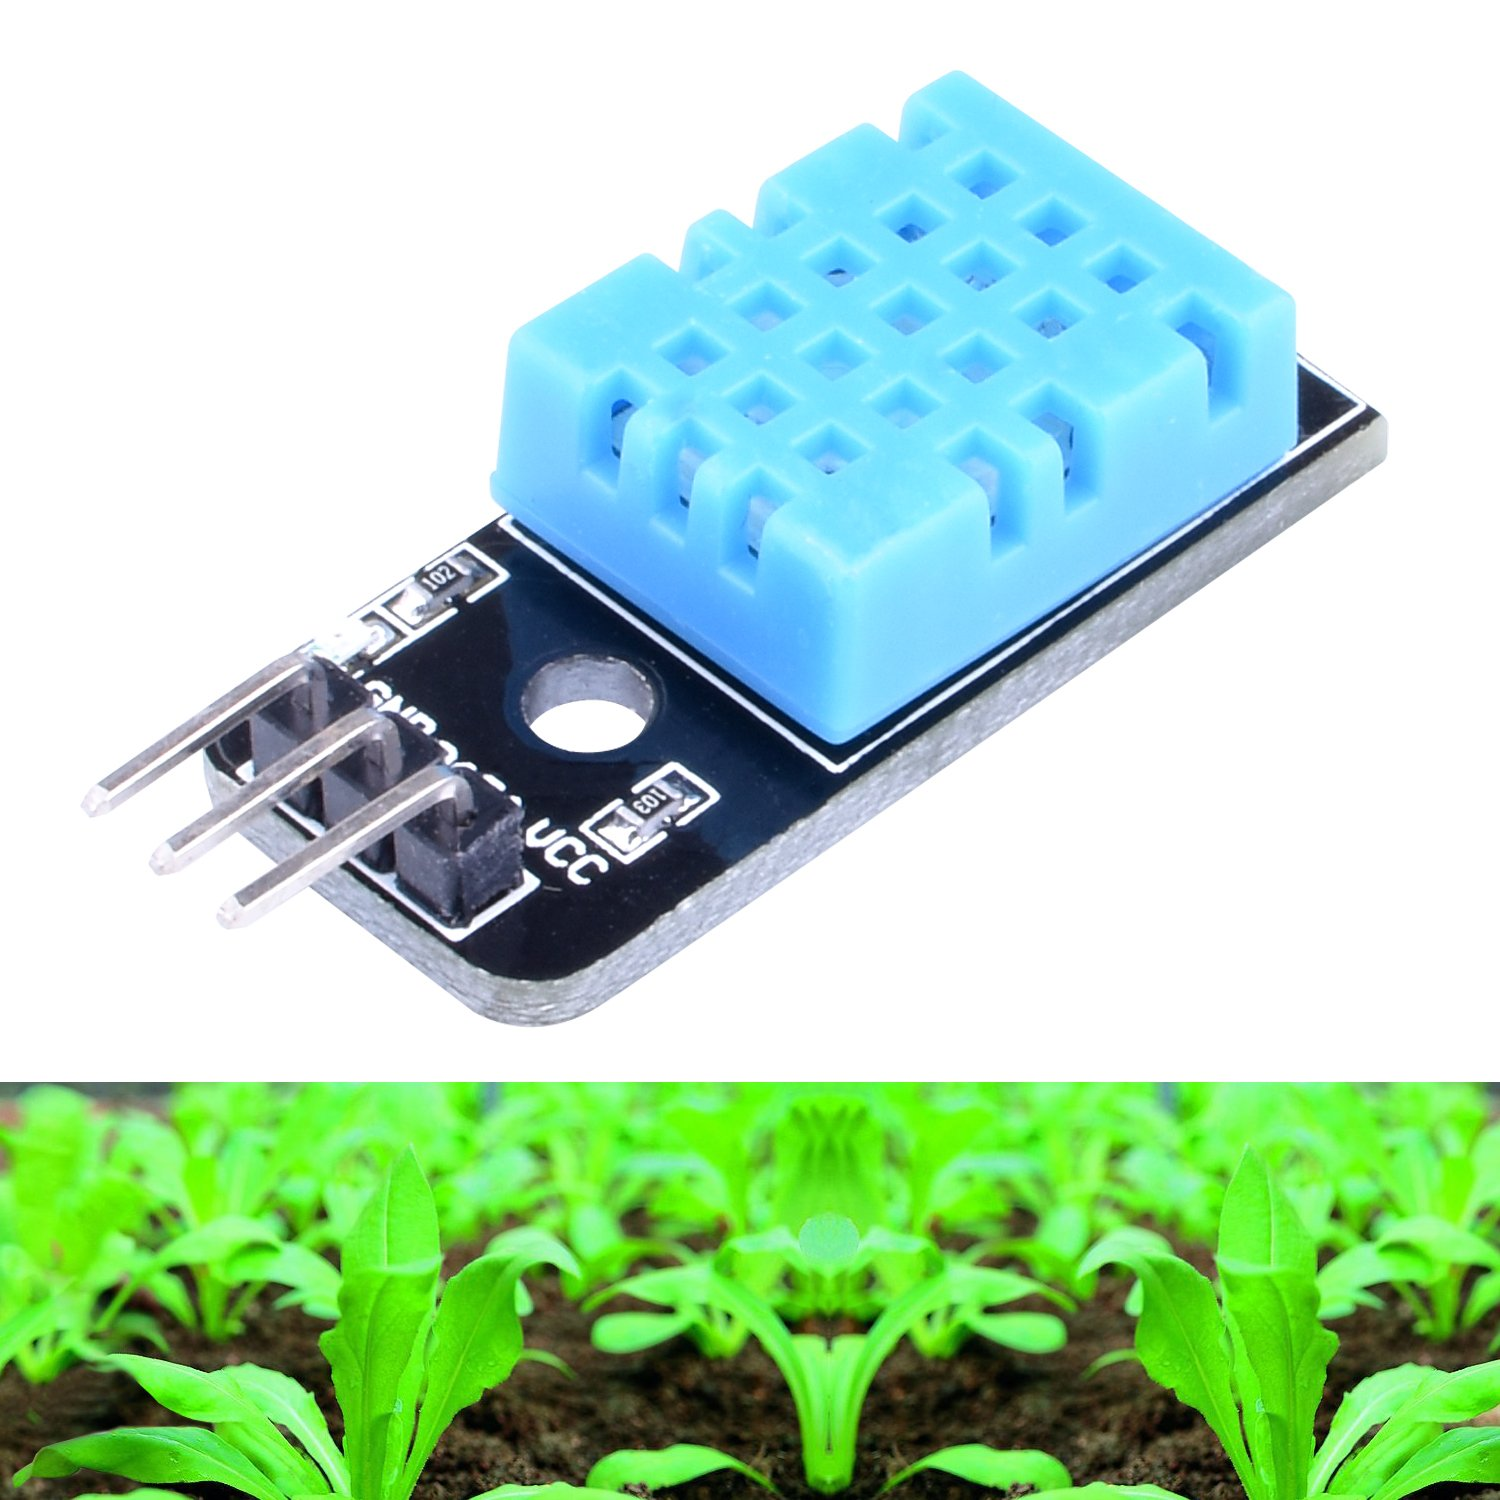 RPI Zero LK03 Longruner 5 PCS Temperature Humidity Sensor Module DHT11 with 20PIN Male to Female DuPont Jump Wires Cable for Arduino UNO R3 MEGA 2560 Raspberry pi 3 2 1 model B 2B A